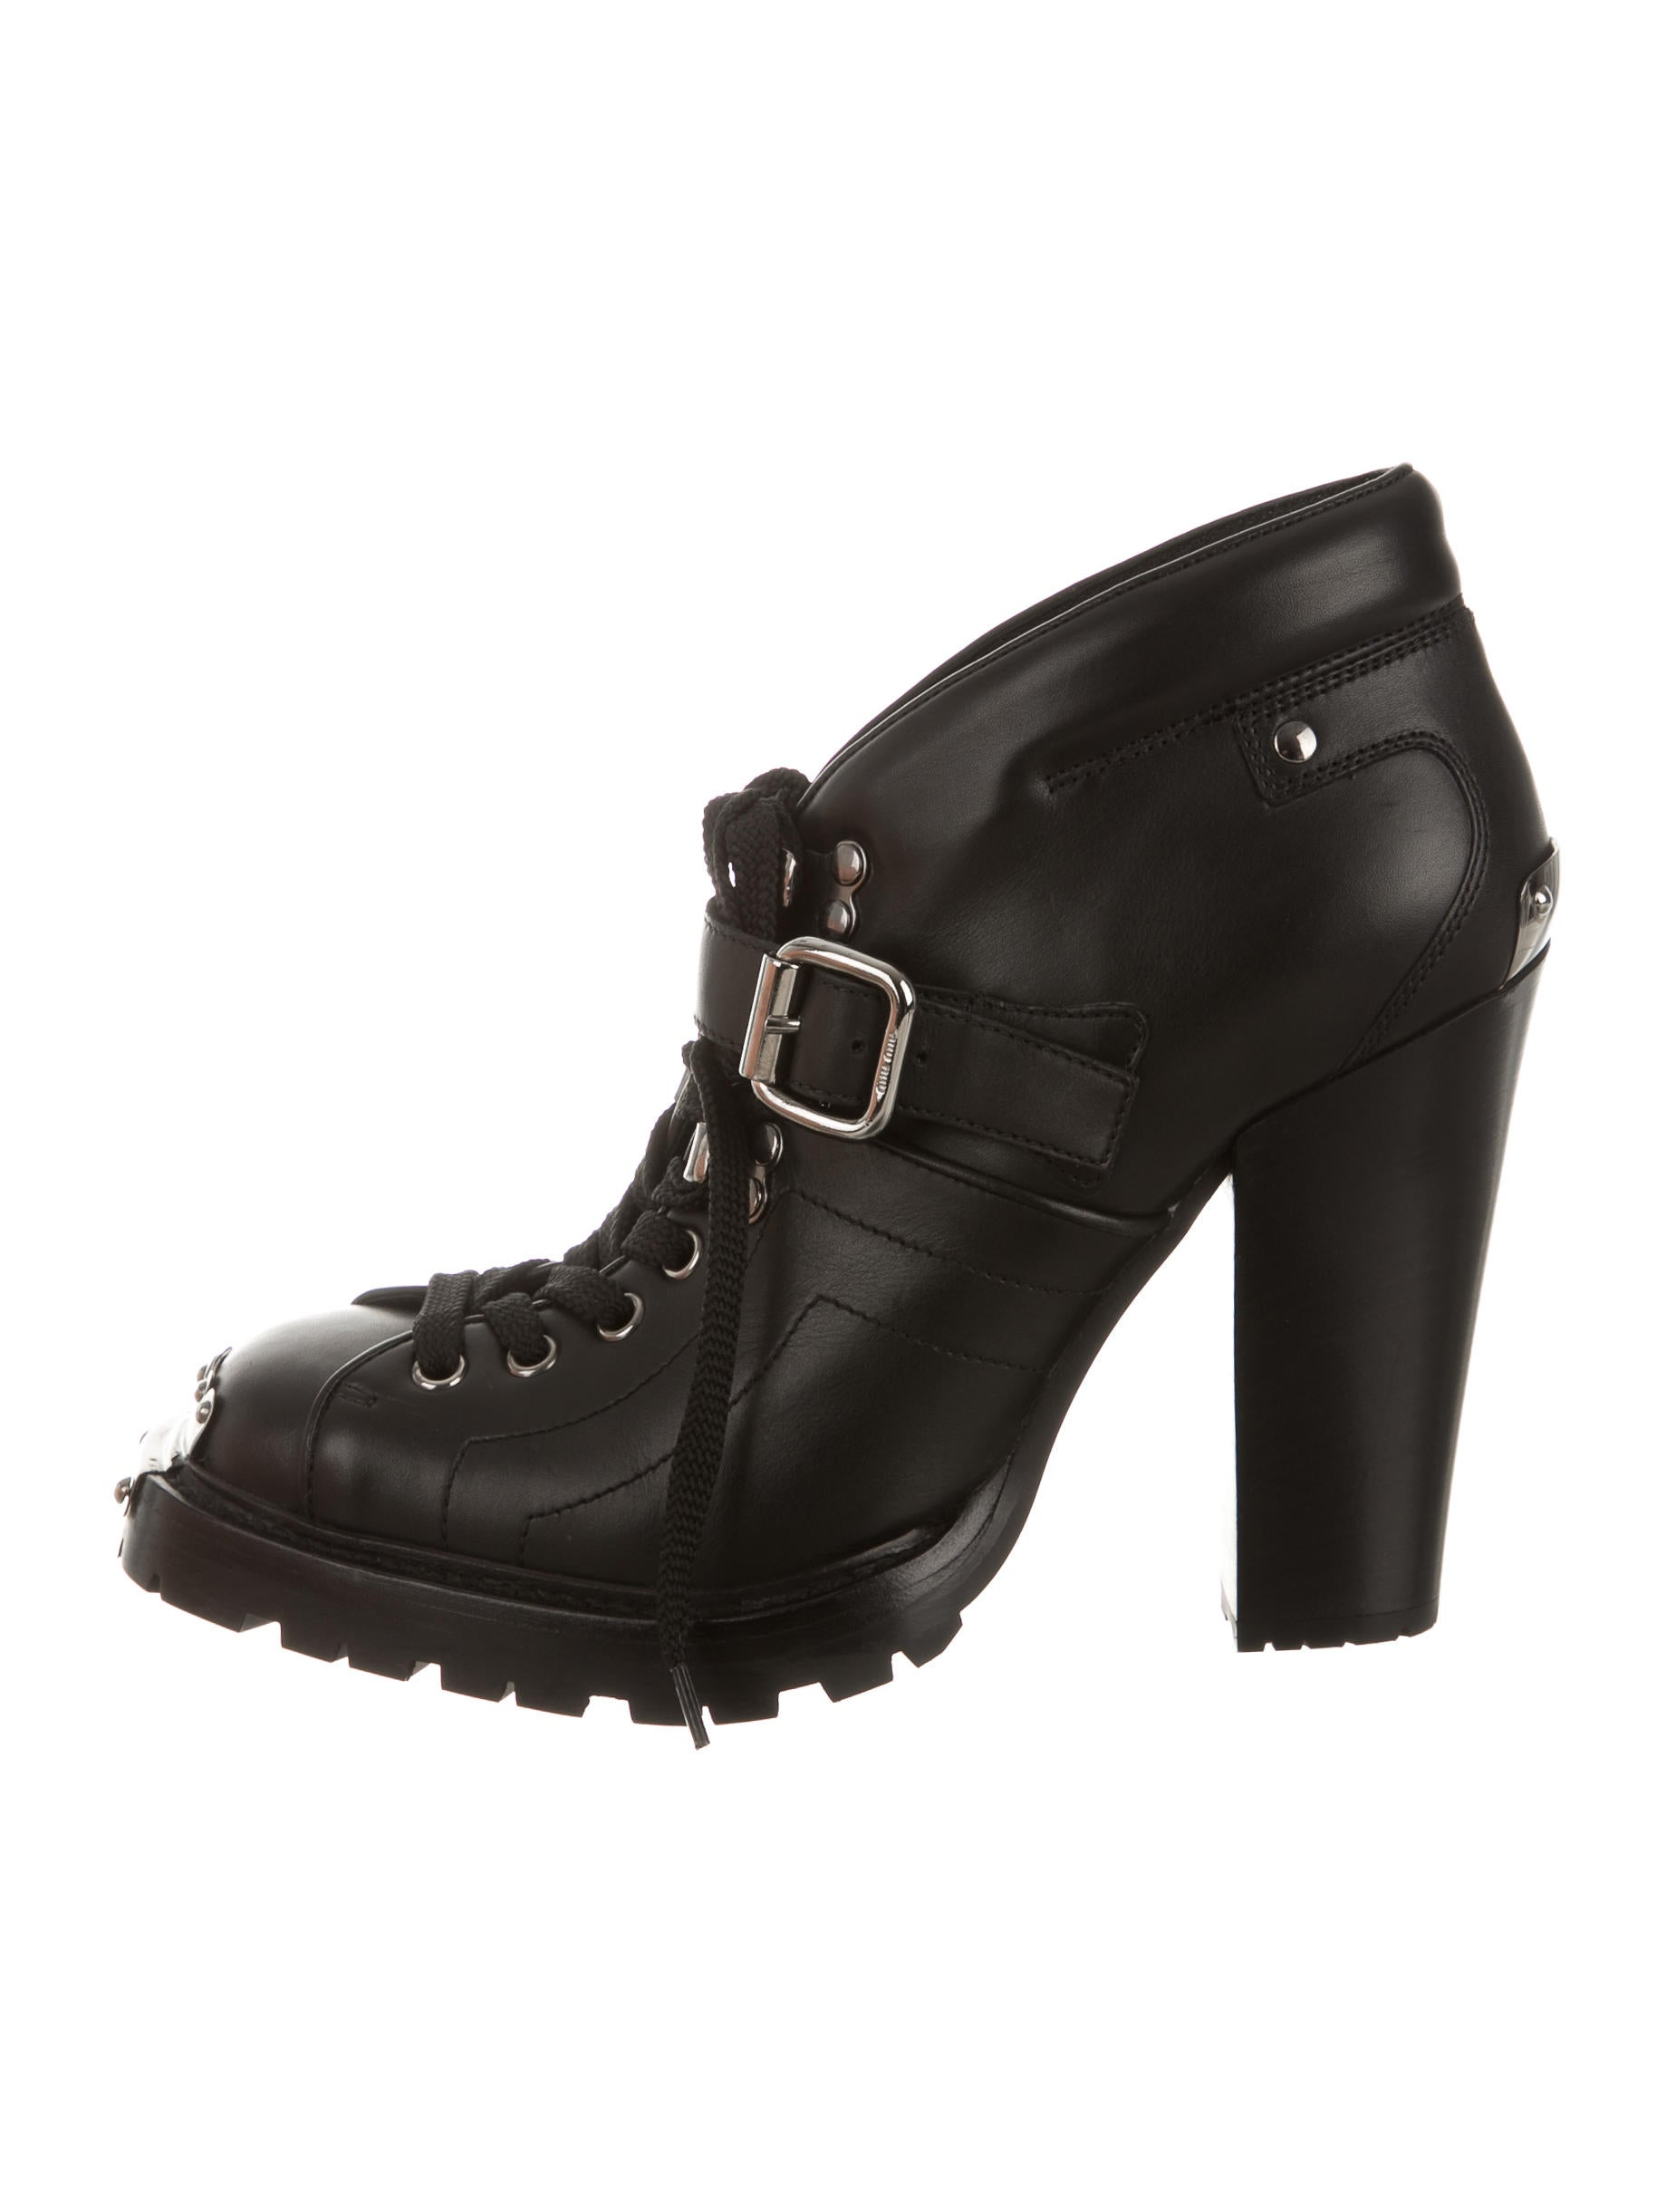 miu miu leather lace up ankle boots w tags shoes